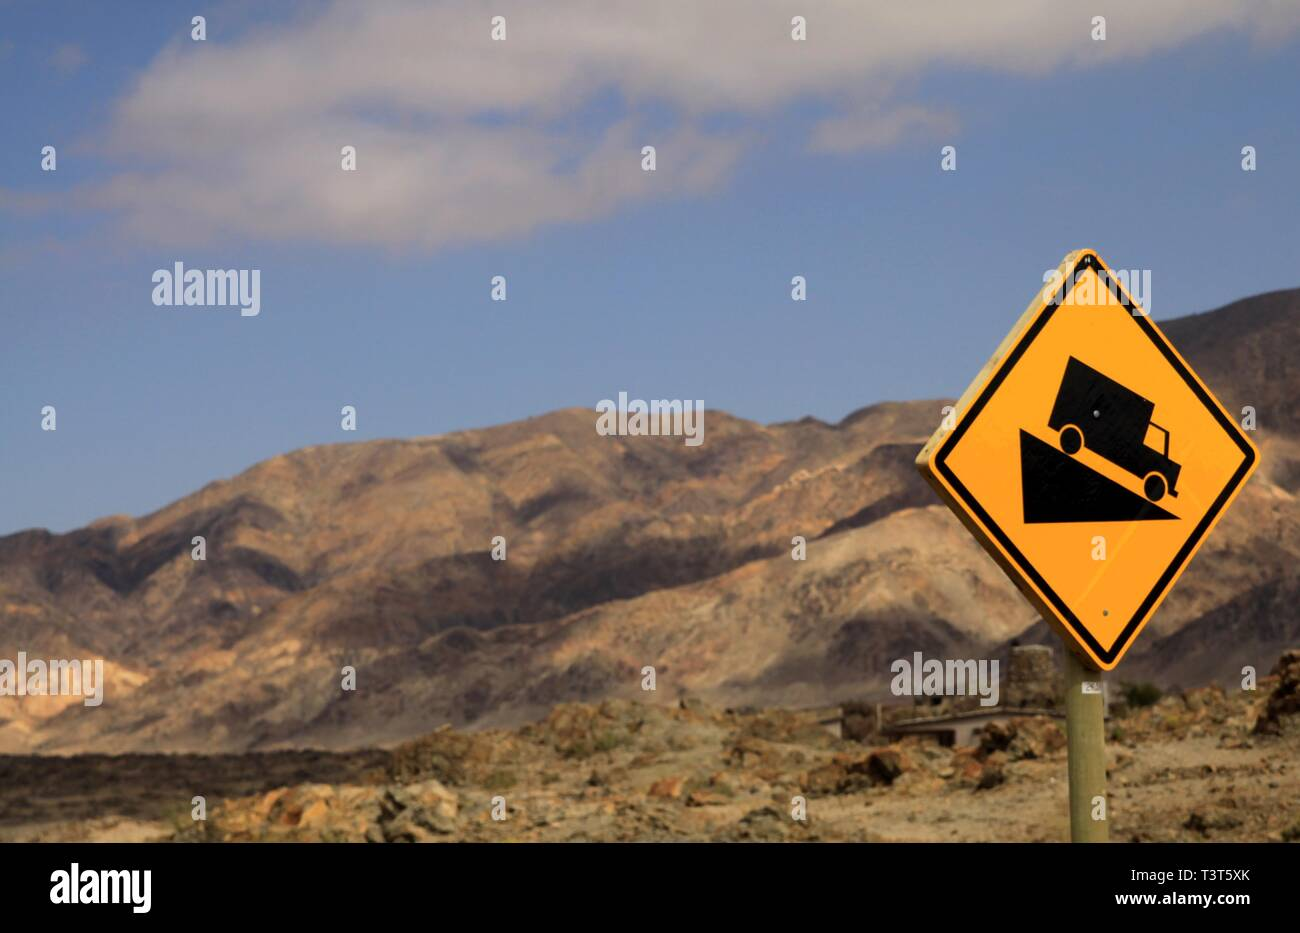 Yellow isolated sign with black truck in dry arid environment warning for steep gradient in Atacama desert, Chile - Stock Image